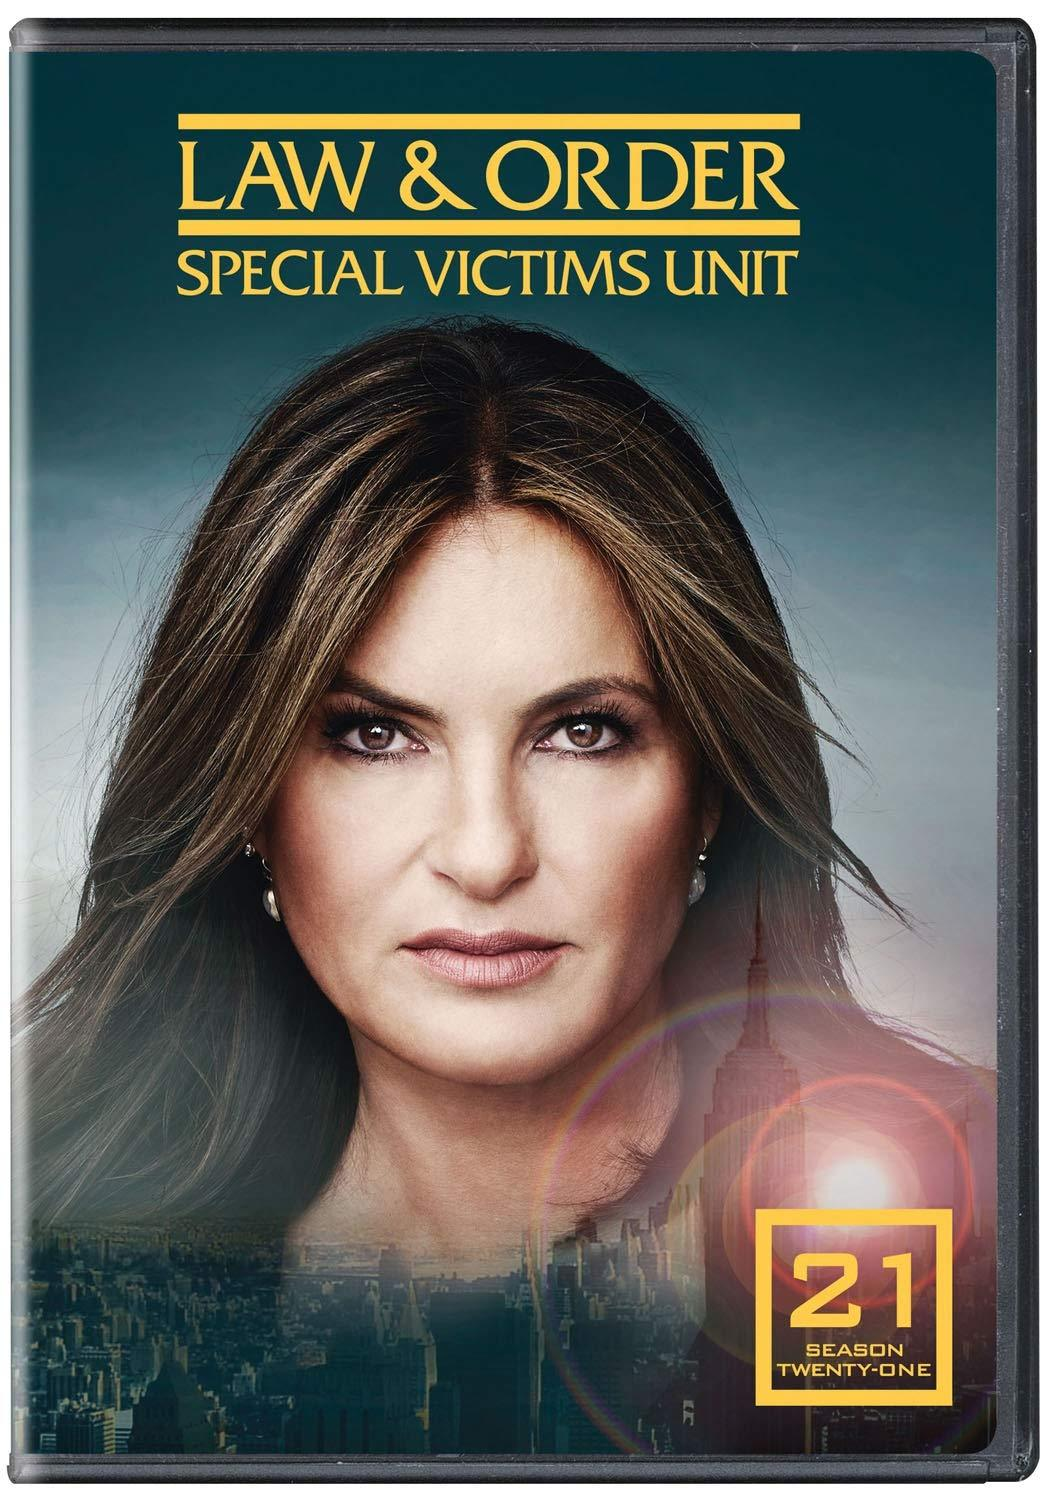 Law and order SVU Season 21 Universal Studios DVDs & Blu-ray Discs